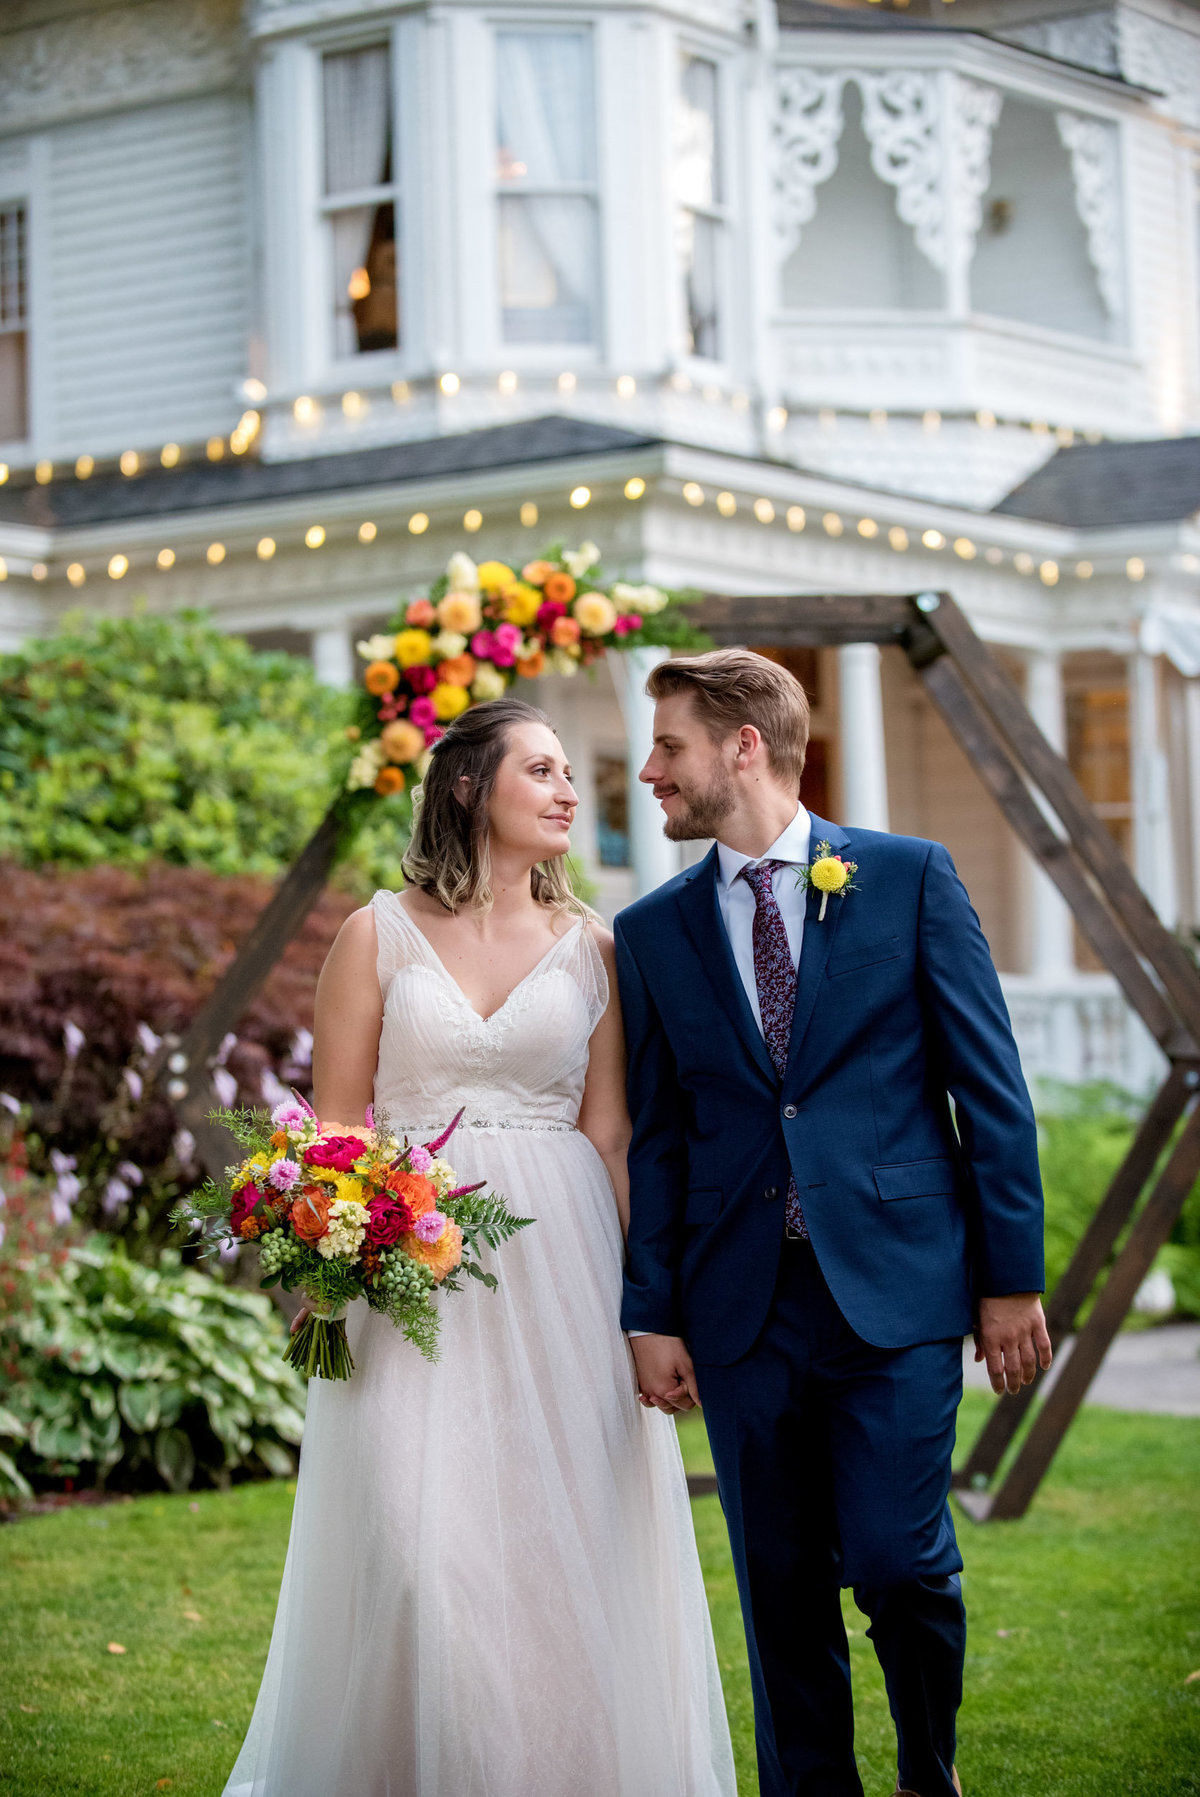 Victorian Belle Mansion Wedding190715-12